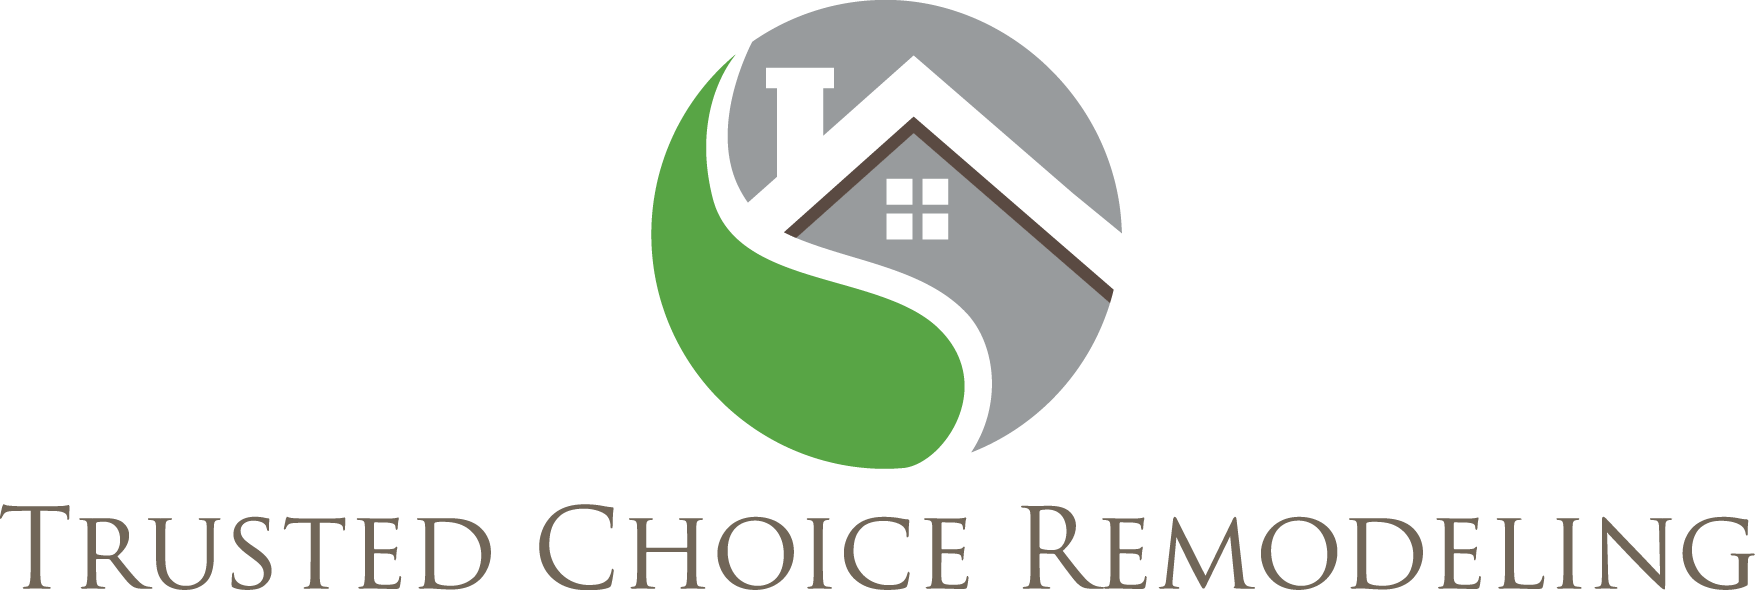 Trusted Choice Remodeling, LLC Reviews.